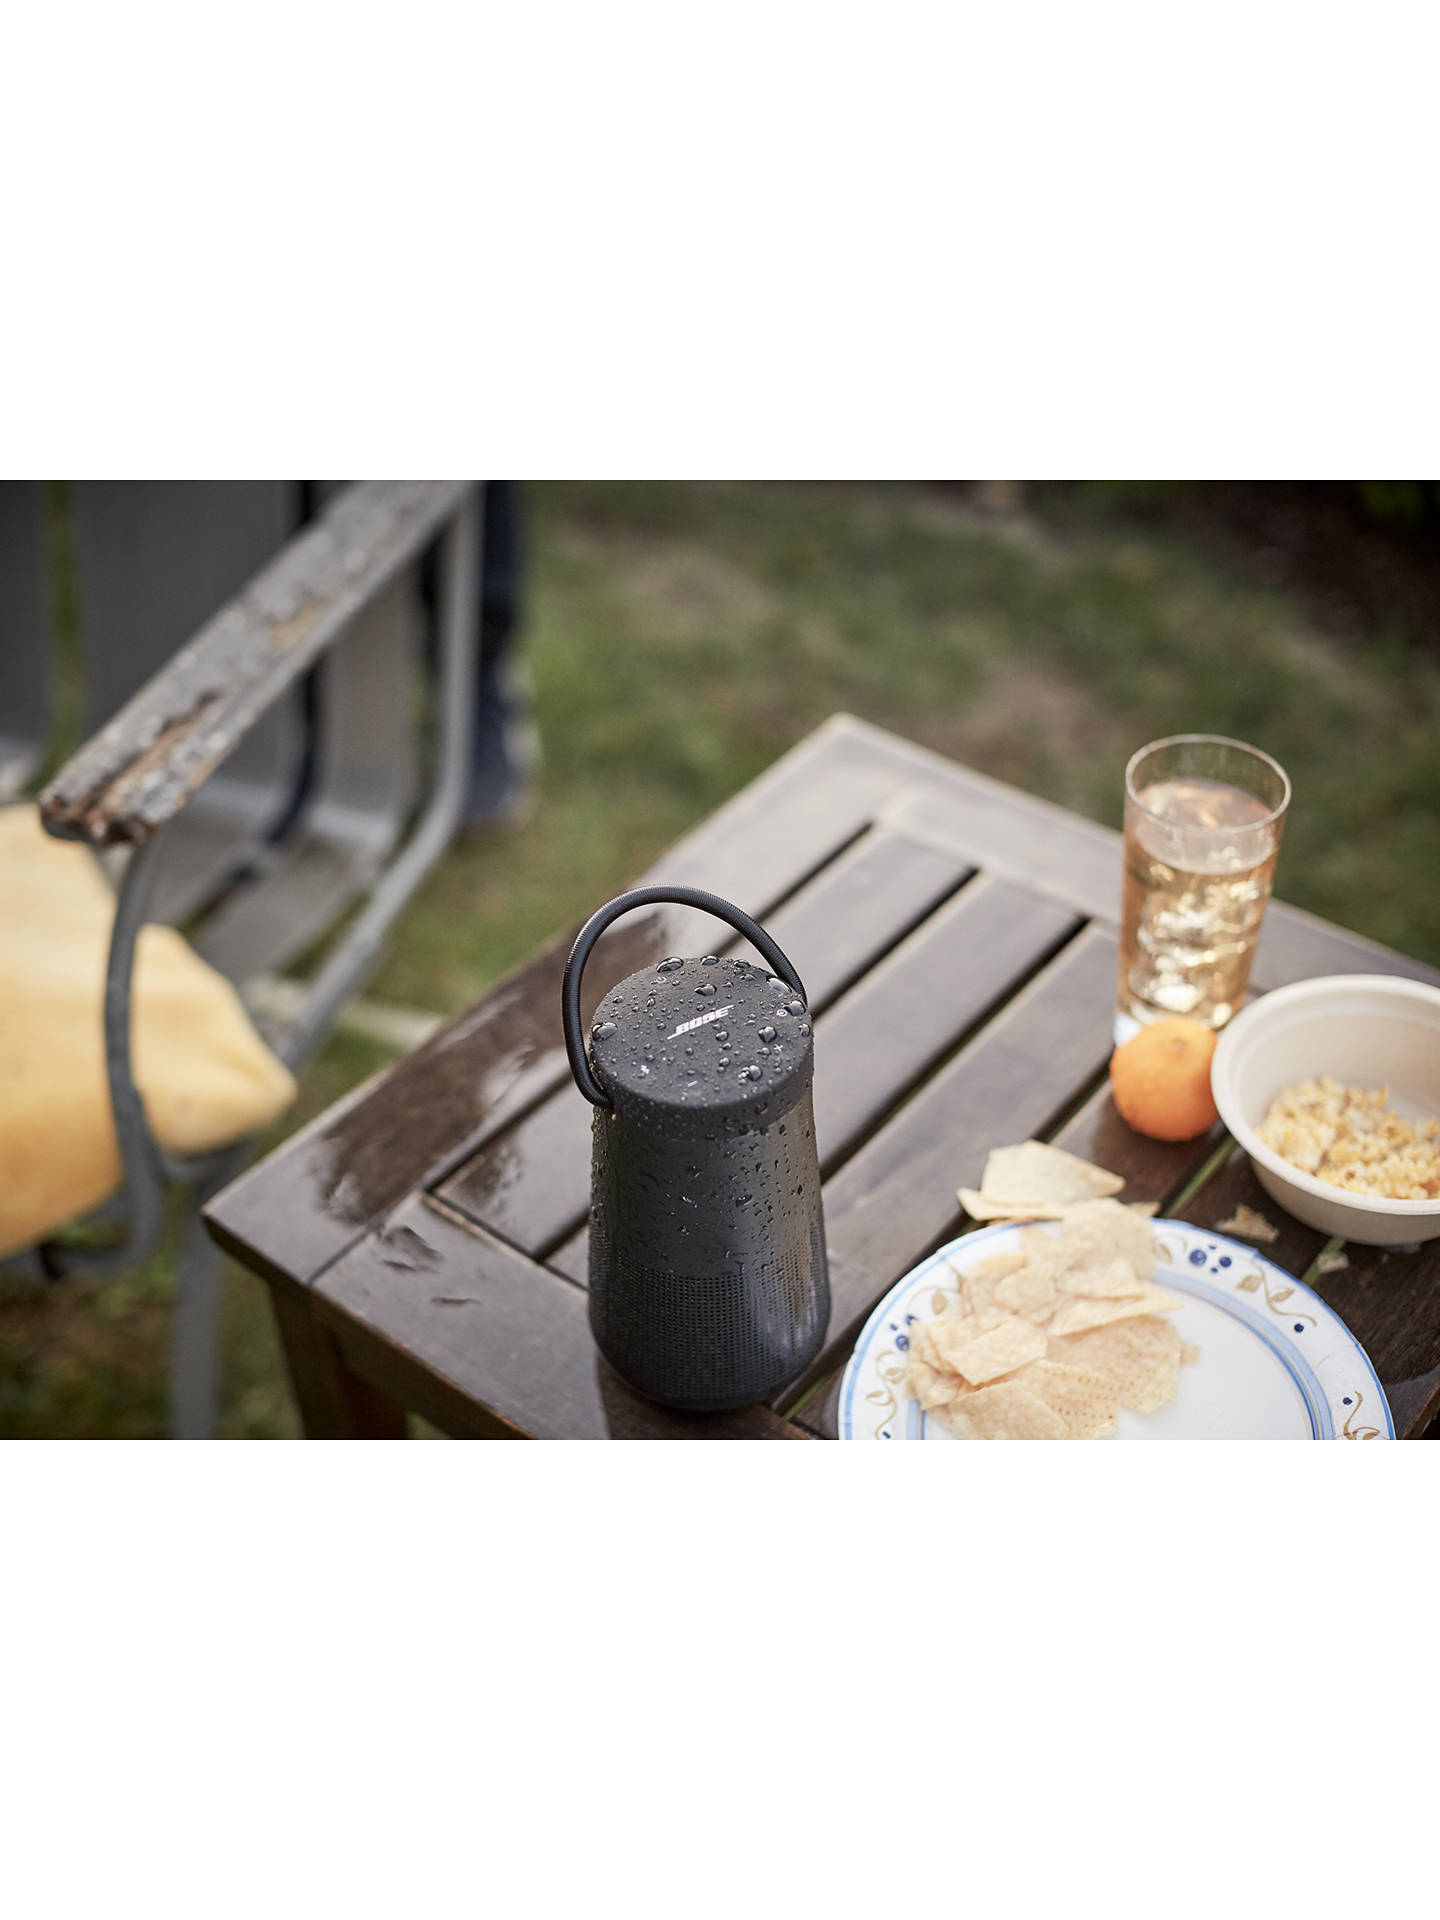 Buy Bose® SoundLink® Revolve+ Water-resistant Portable Bluetooth Speaker with Built-in Speakerphone & Handle, Triple Black Online at johnlewis.com